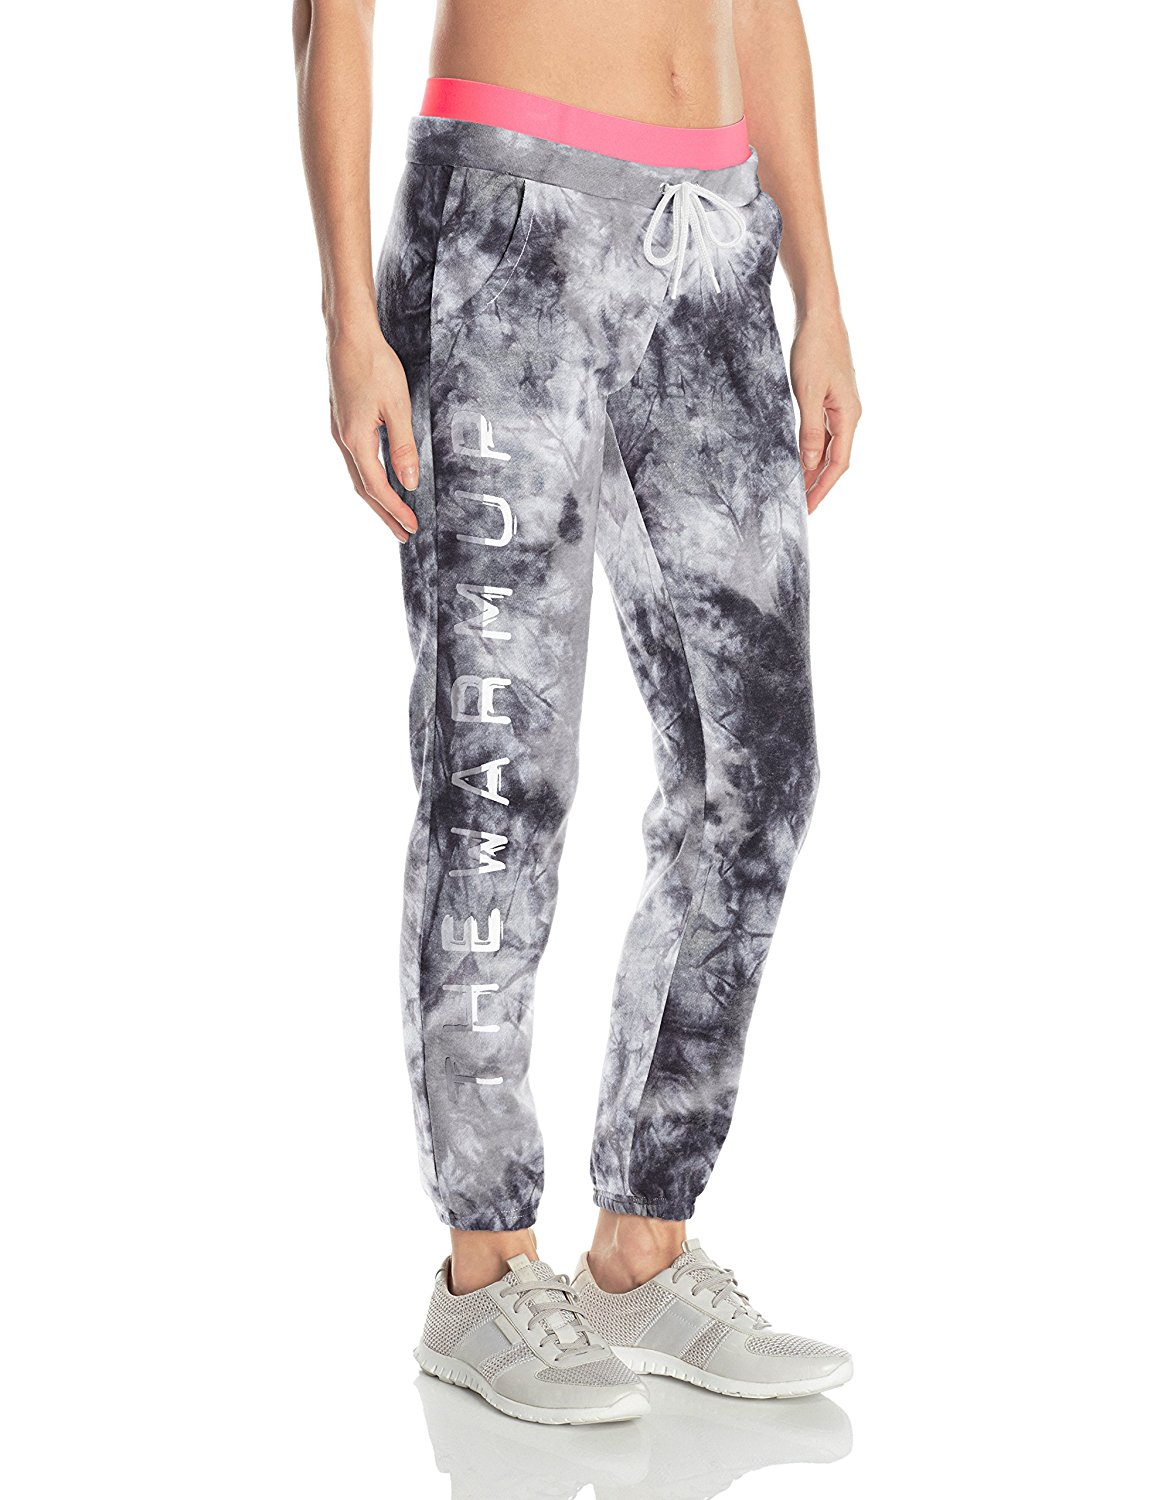 The Warm Up by Jessica Simpson Women's Tie Dye Fleece Jogger With Branded Graphic